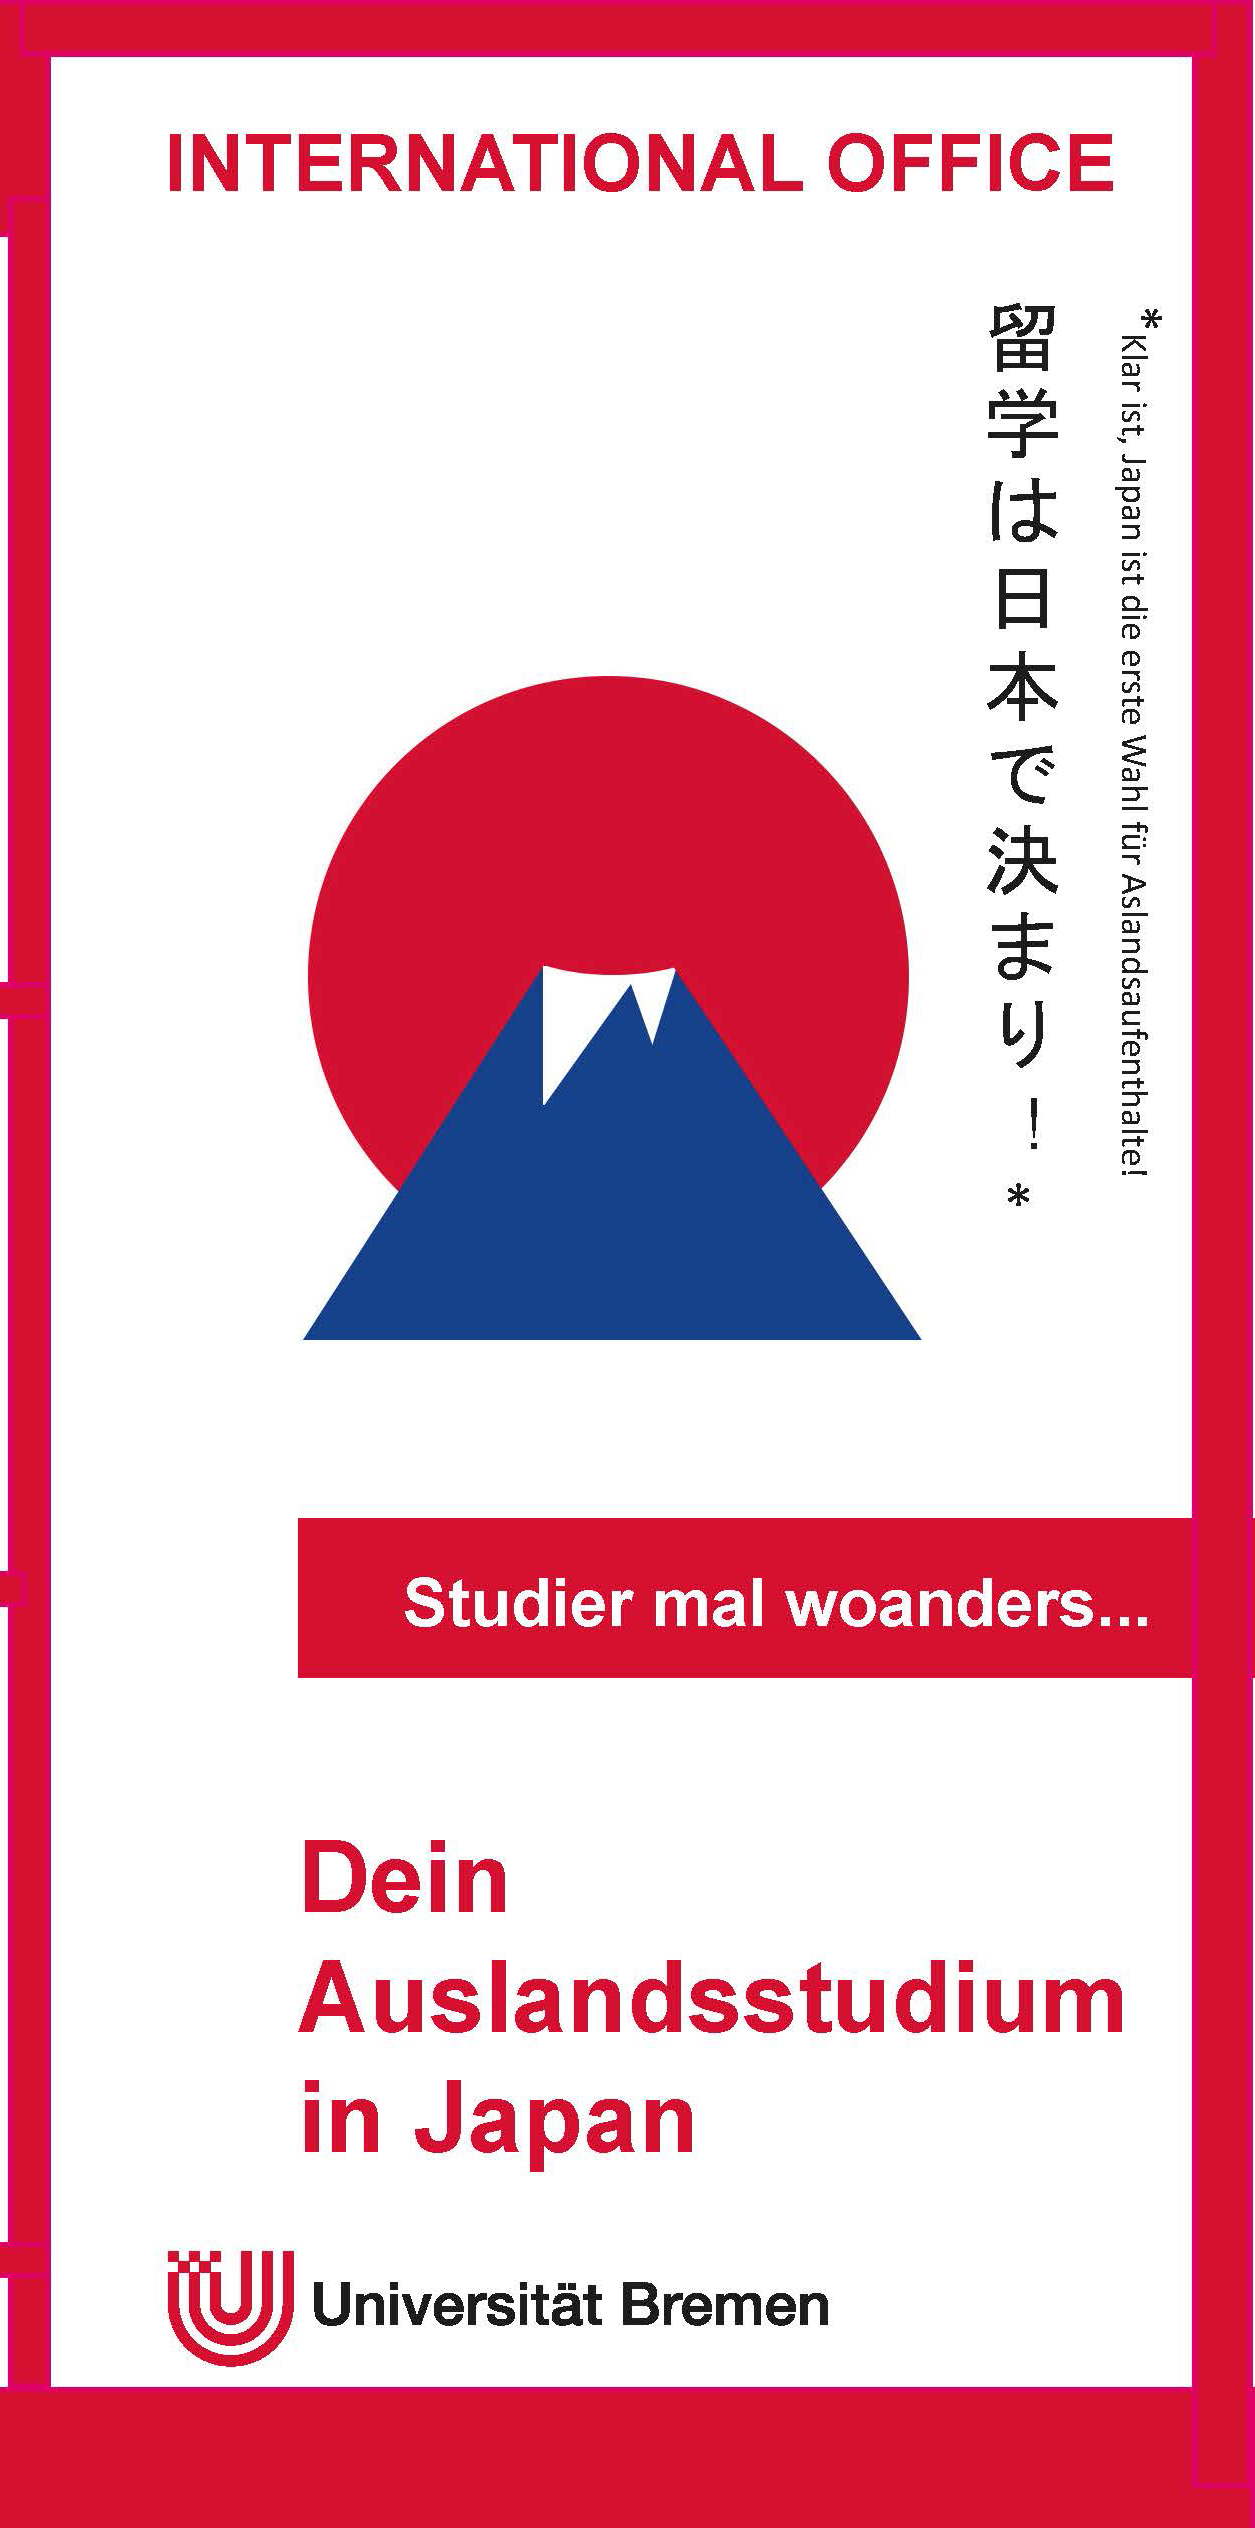 International Office Studium in Japan Flyer